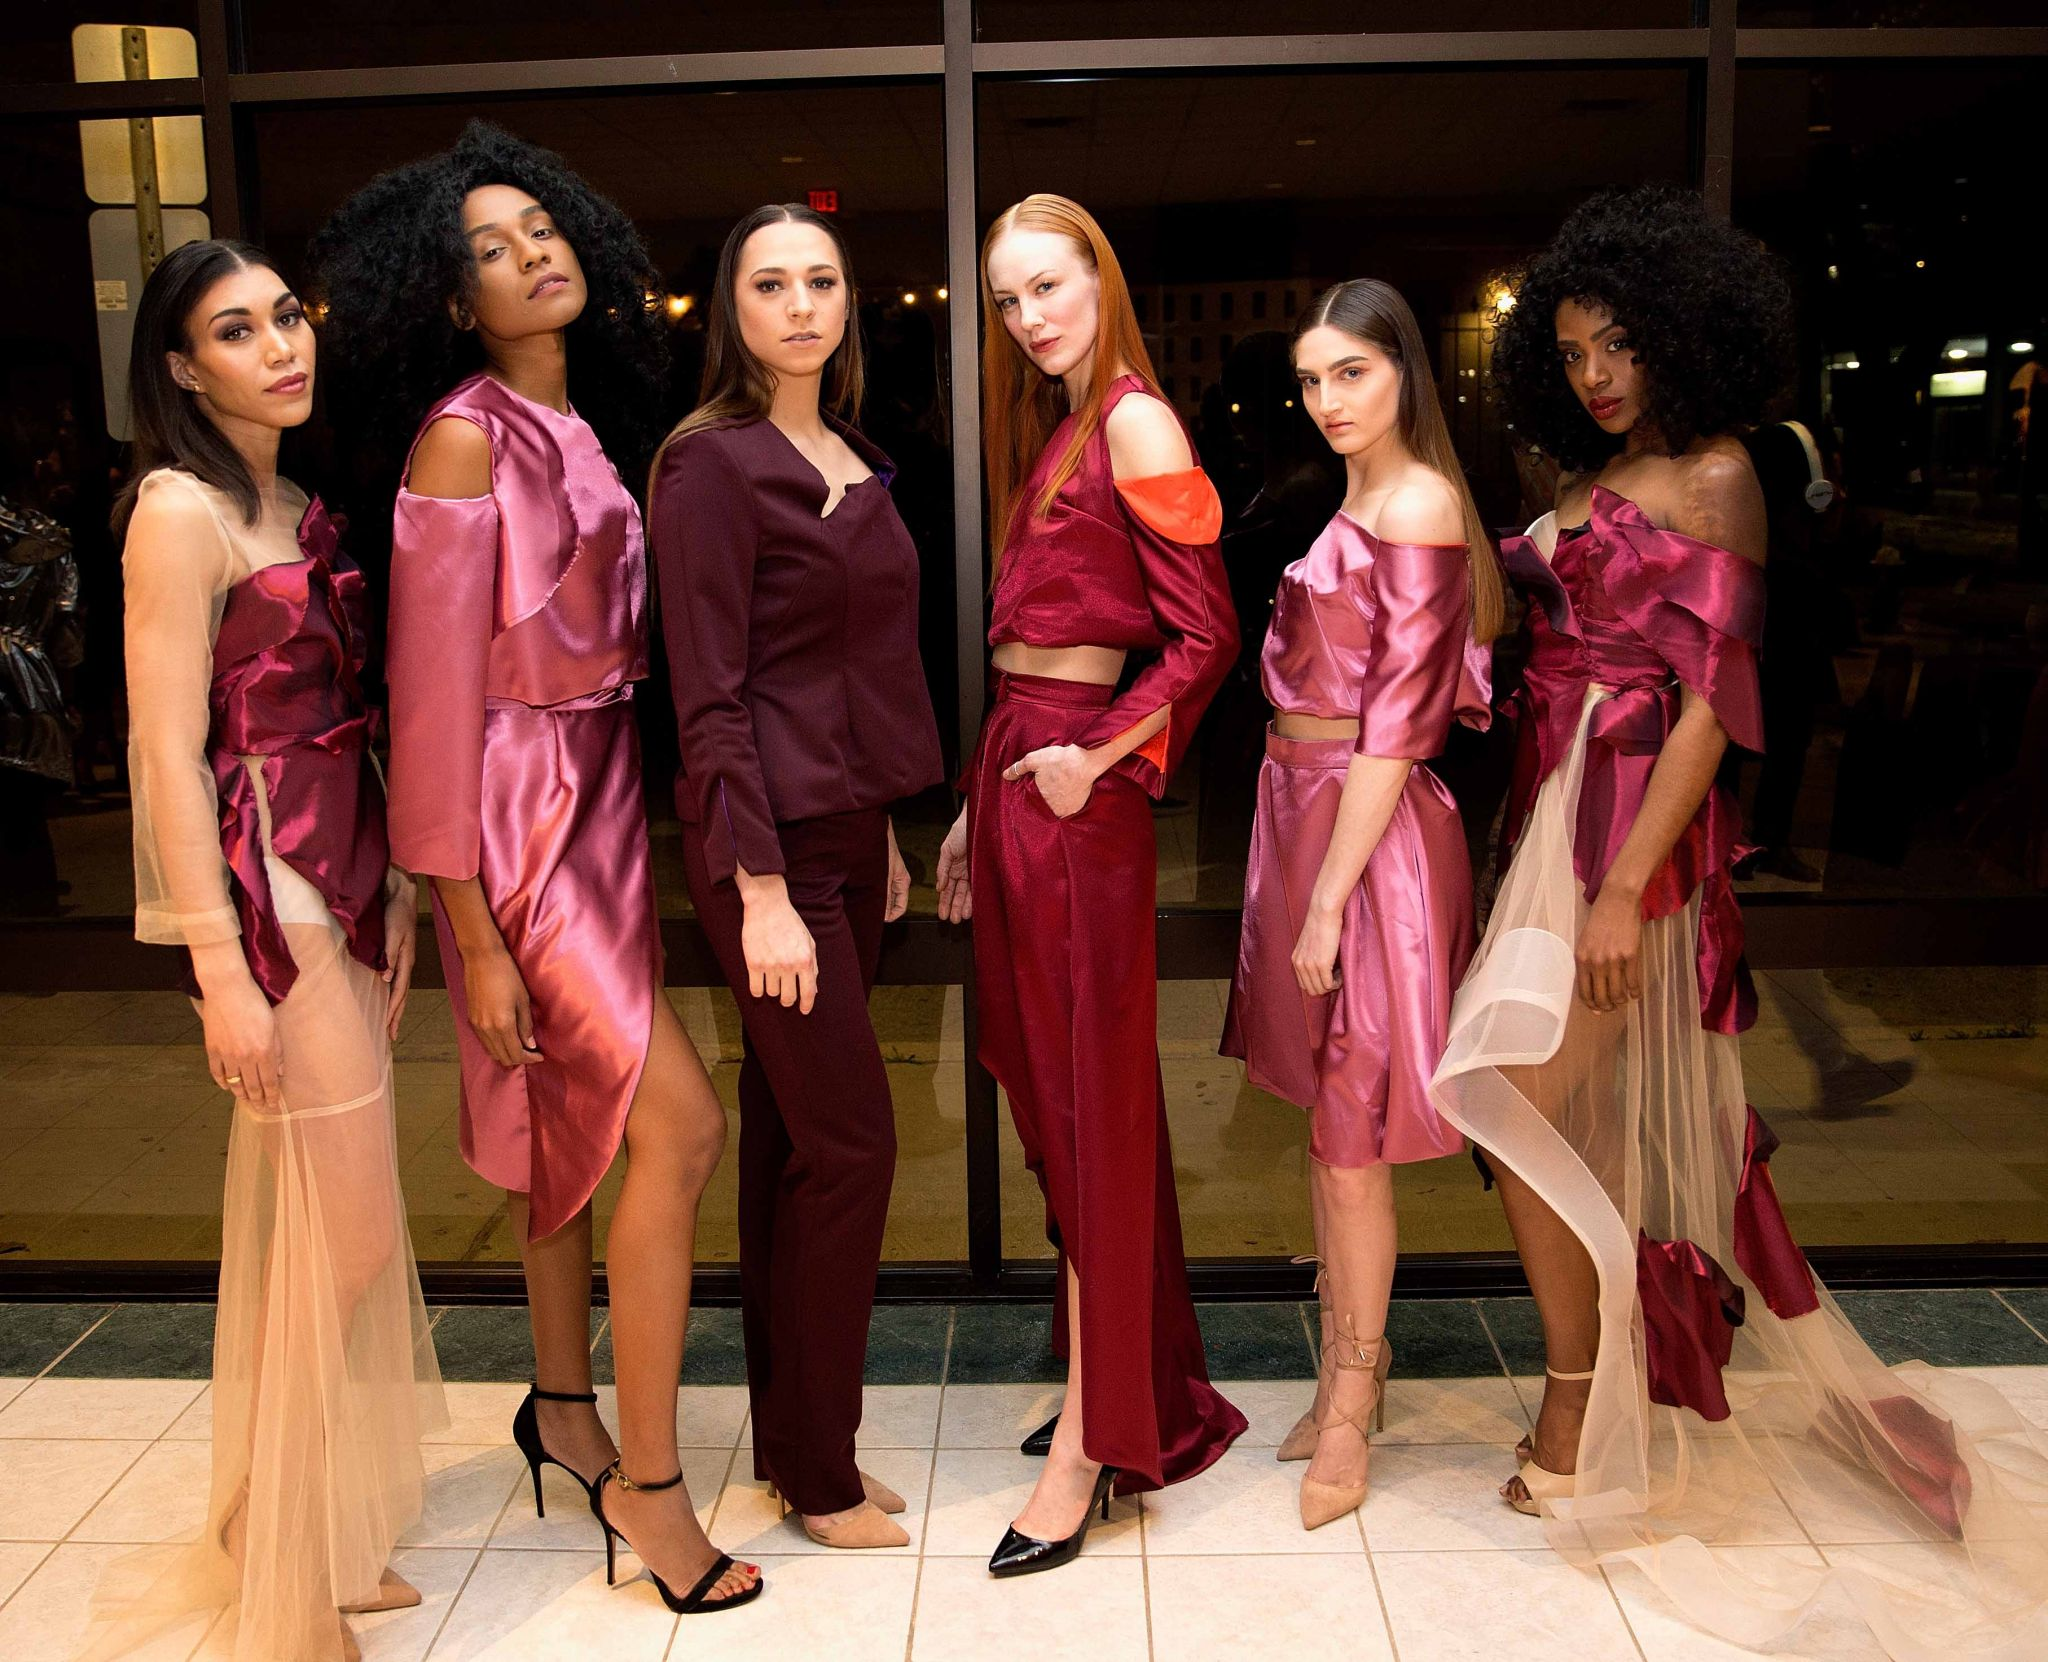 Houston week-long 'Fresh Off the Rail' haut fashion event kicks off